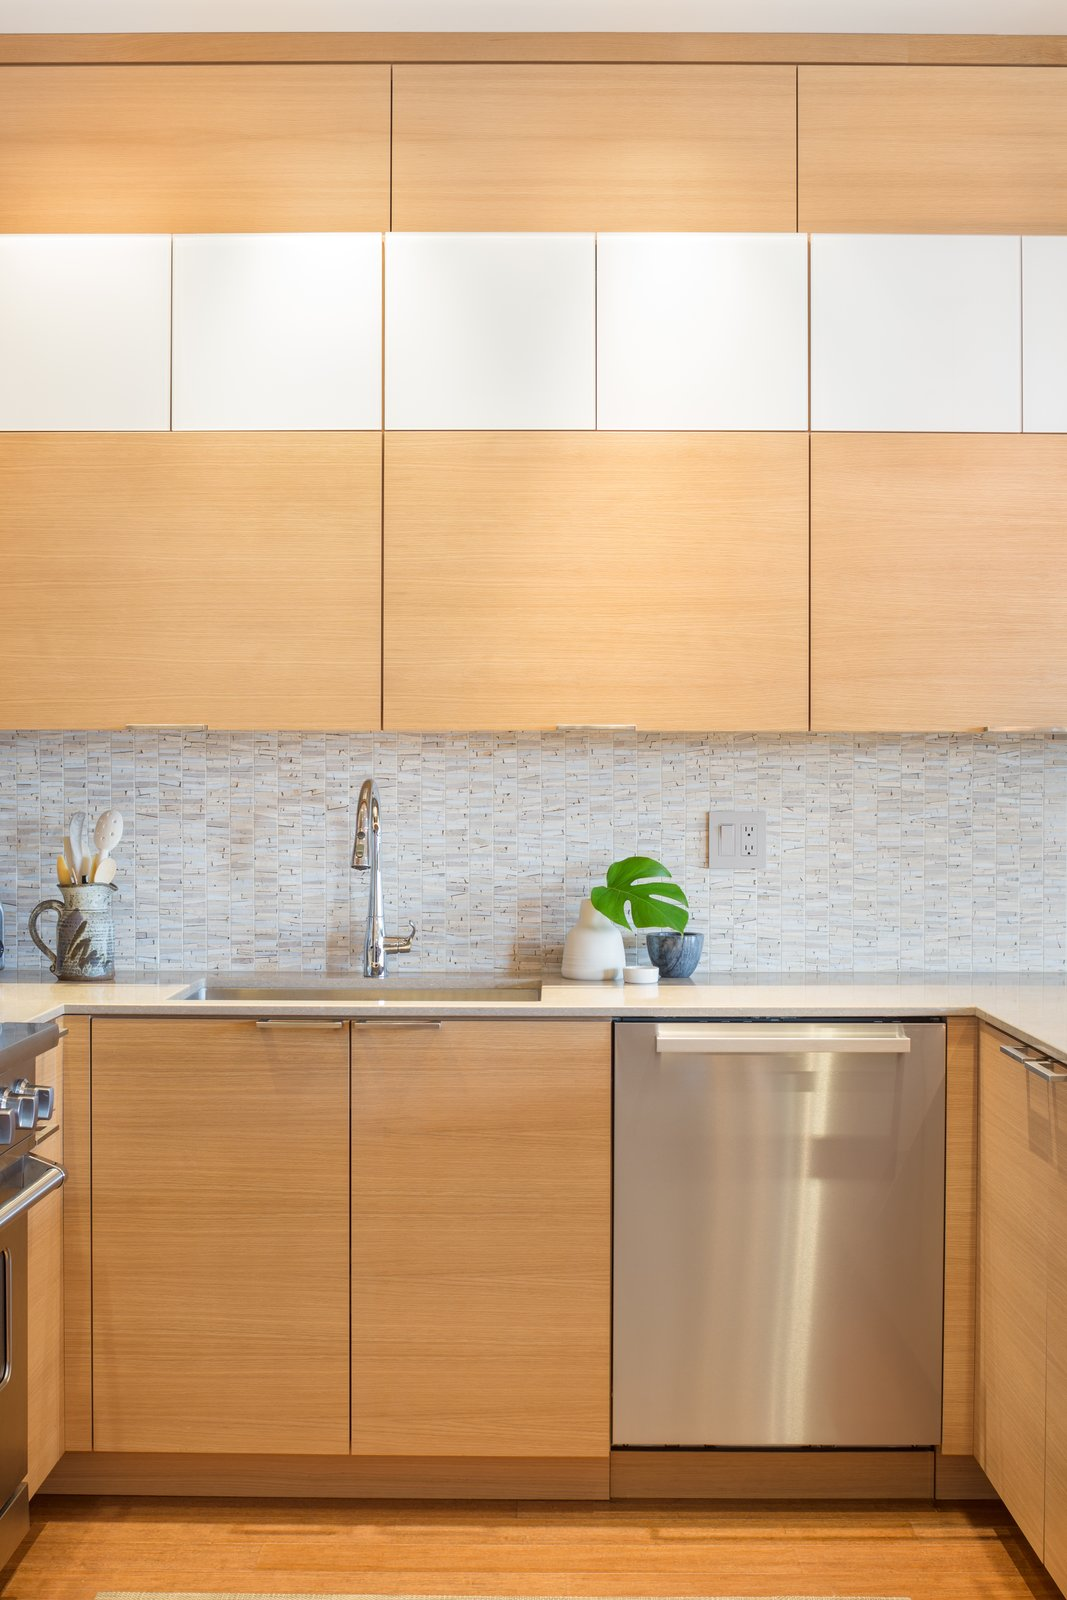 Pops of white enhance the warm wood tones  Tagged: Wood, Stone Tile, White, Medium Hardwood, Mosaic Tile, Recessed, Ceiling, Pendant, Refrigerator, Cooktops, Range, Undermount, and Kitchen.  Best Kitchen Cooktops Stone Tile Photos from Tanner Place